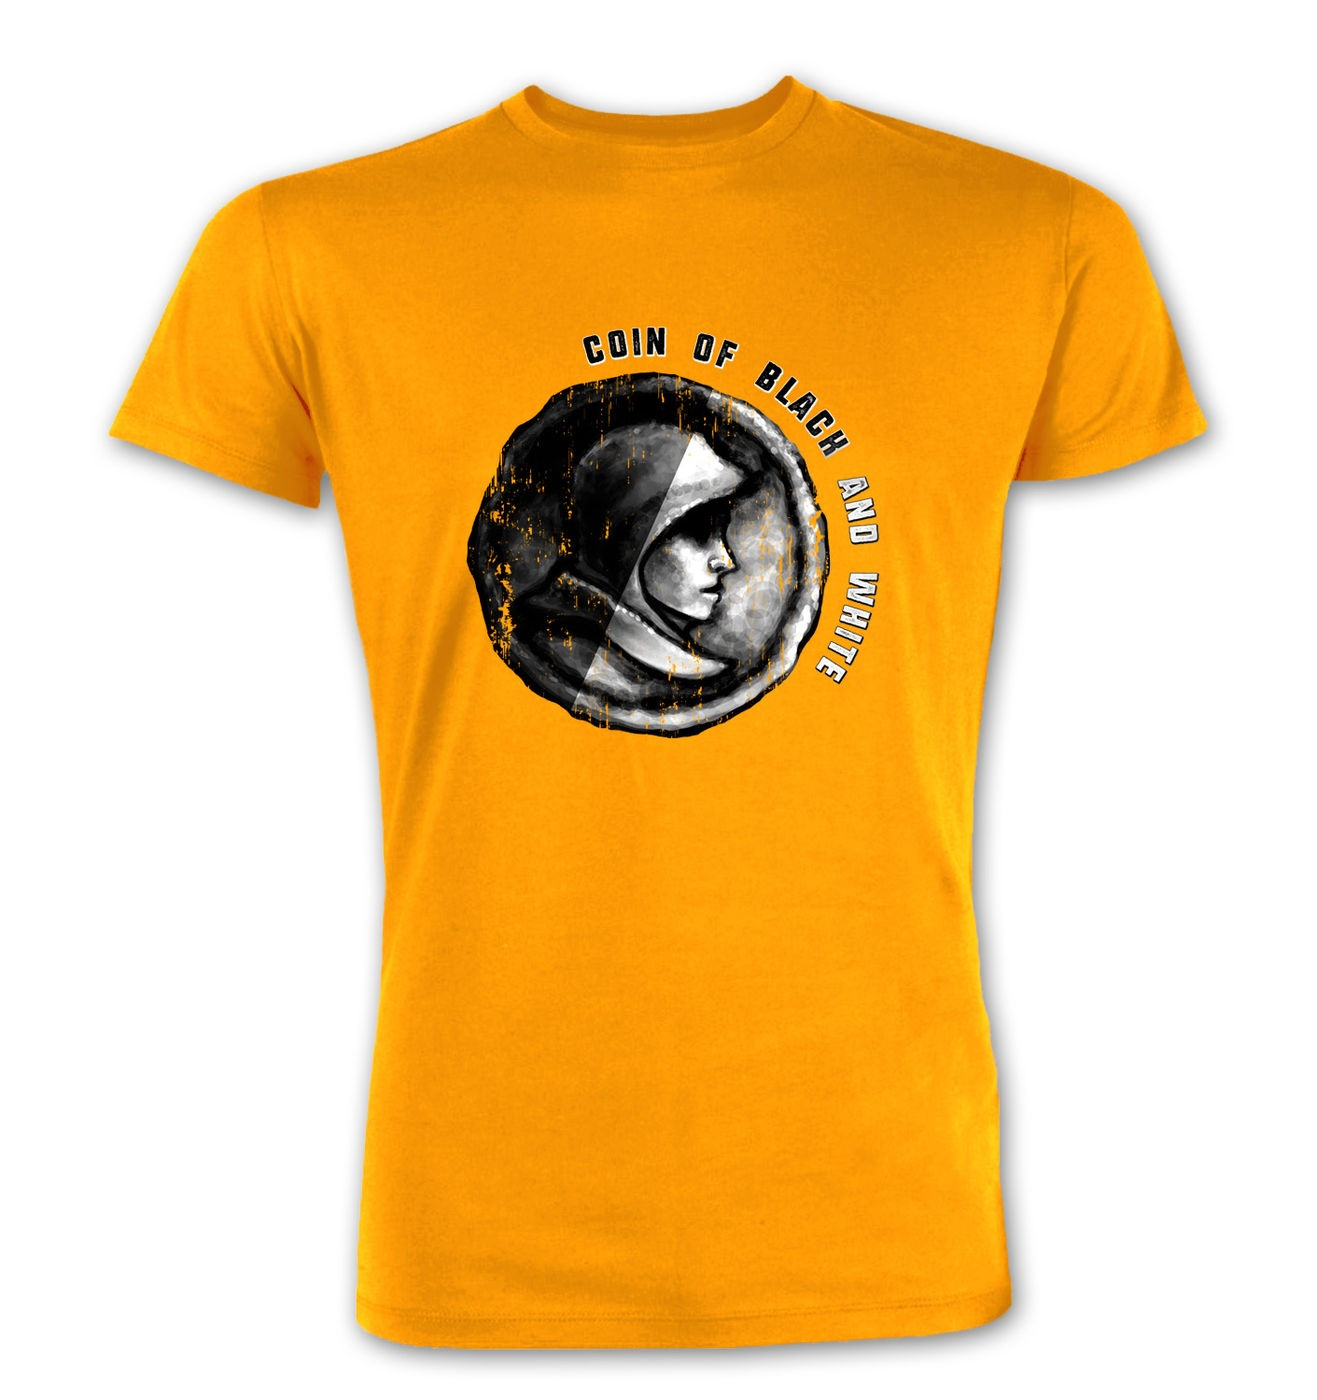 Coin Of Black And White premium t-shirt by Something Geeky